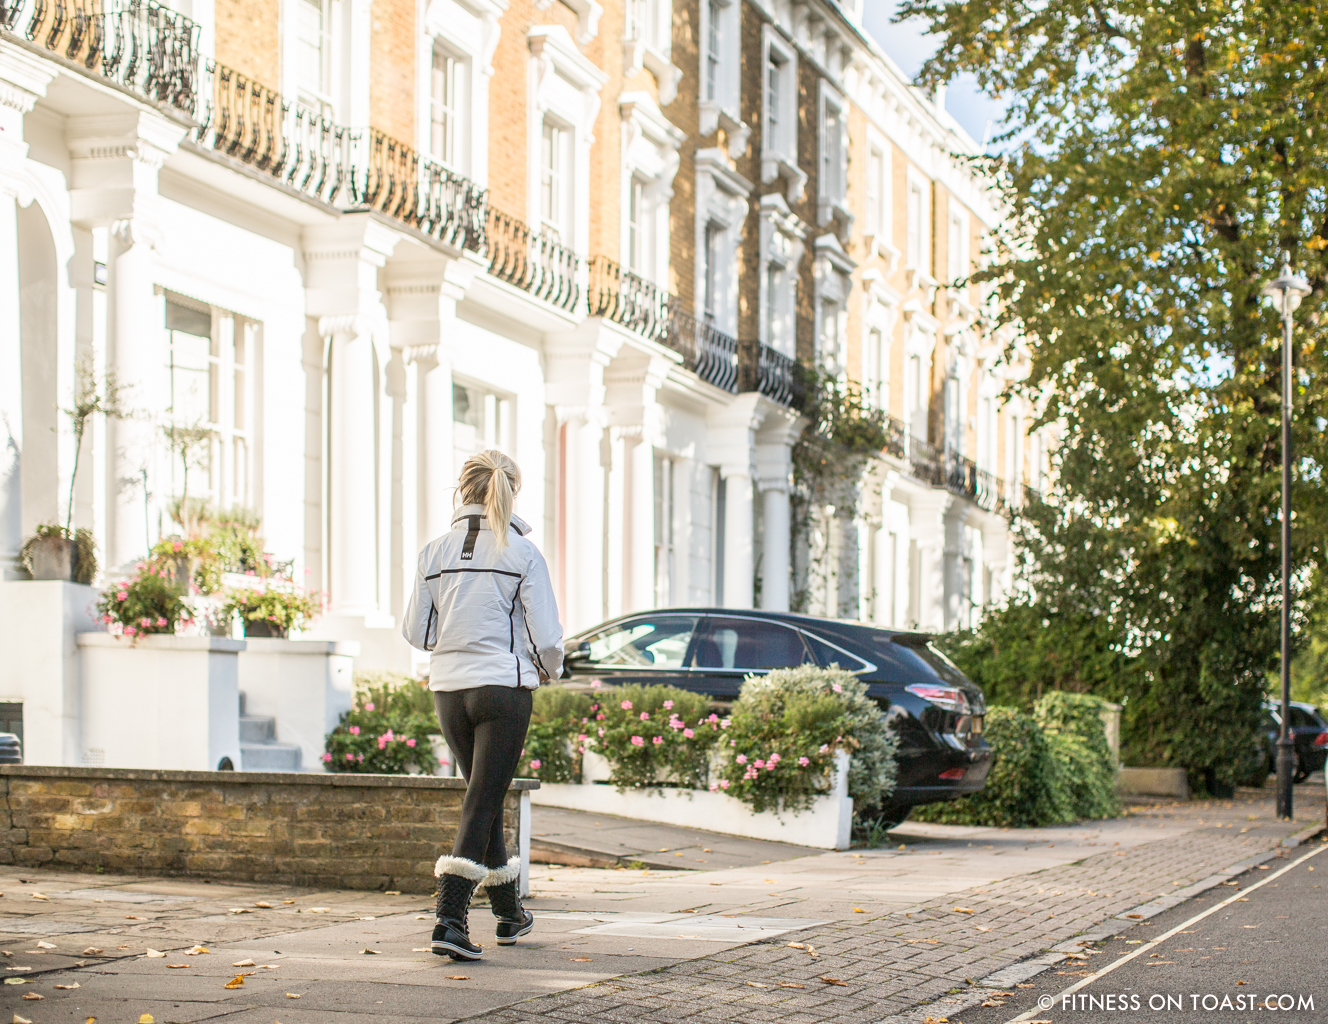 fitness-on-toast-faya-helly-hansen-competition-giveaway-sailing-pack-starter-kit-london-st-johns-wood-blogger-photo-street-style-fashion-ootd-winter-fit-kit